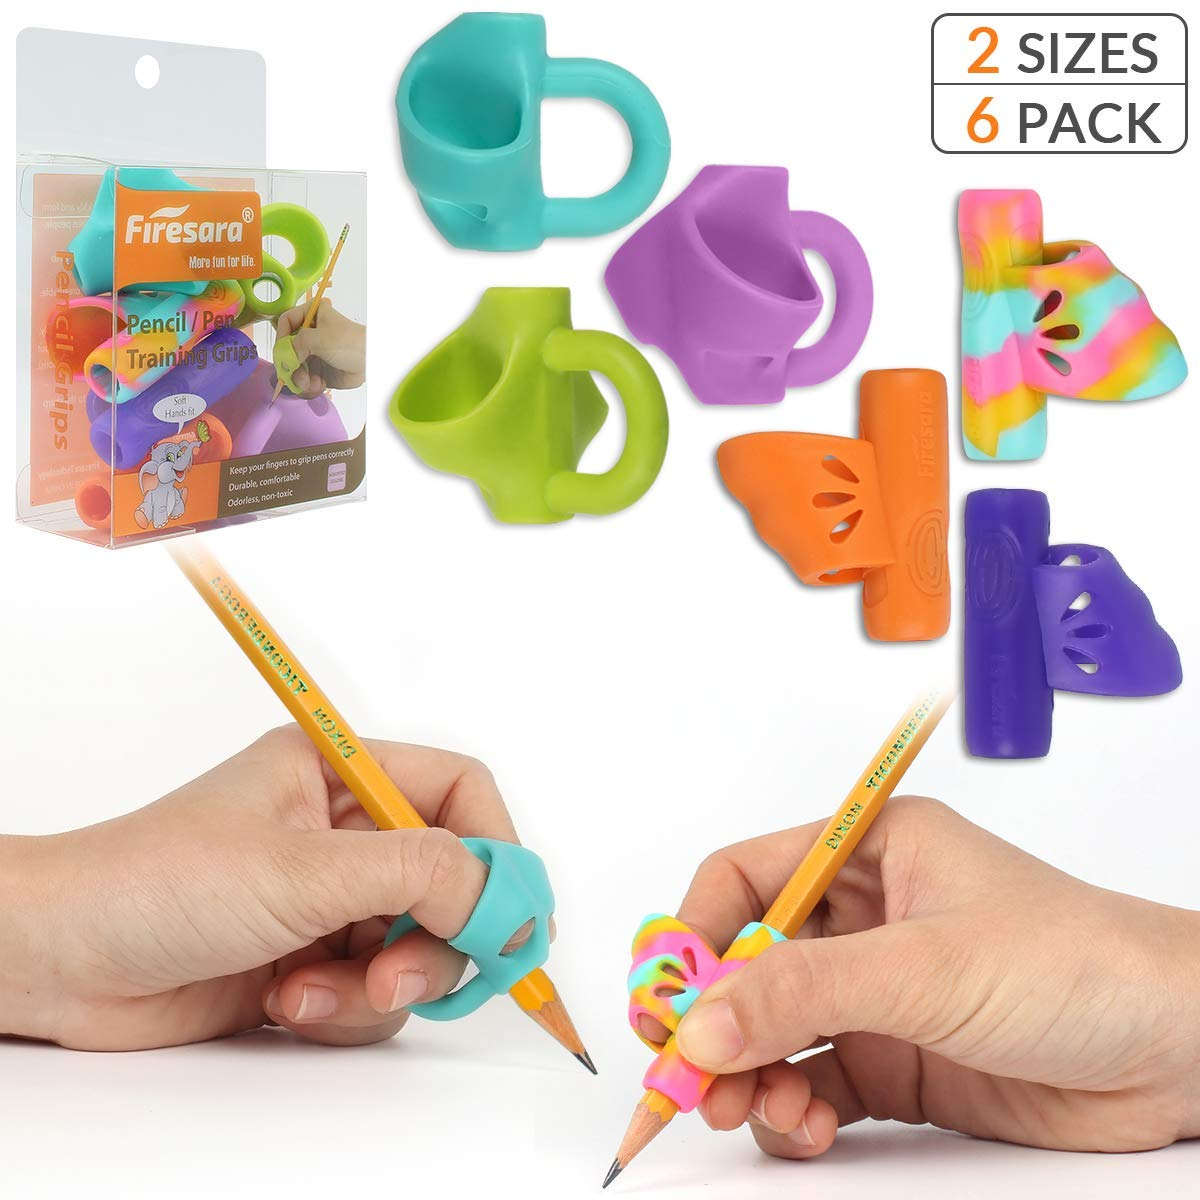 Pencil Grips, Firesara New Professional Pencil Aid Grip Set Teach Writing Tools Butterfly and 3 Fingers Sets Ergonomic Writing Aid for Kids Preschoolers Children Adults Arthritis 2 Types (6Pcs)